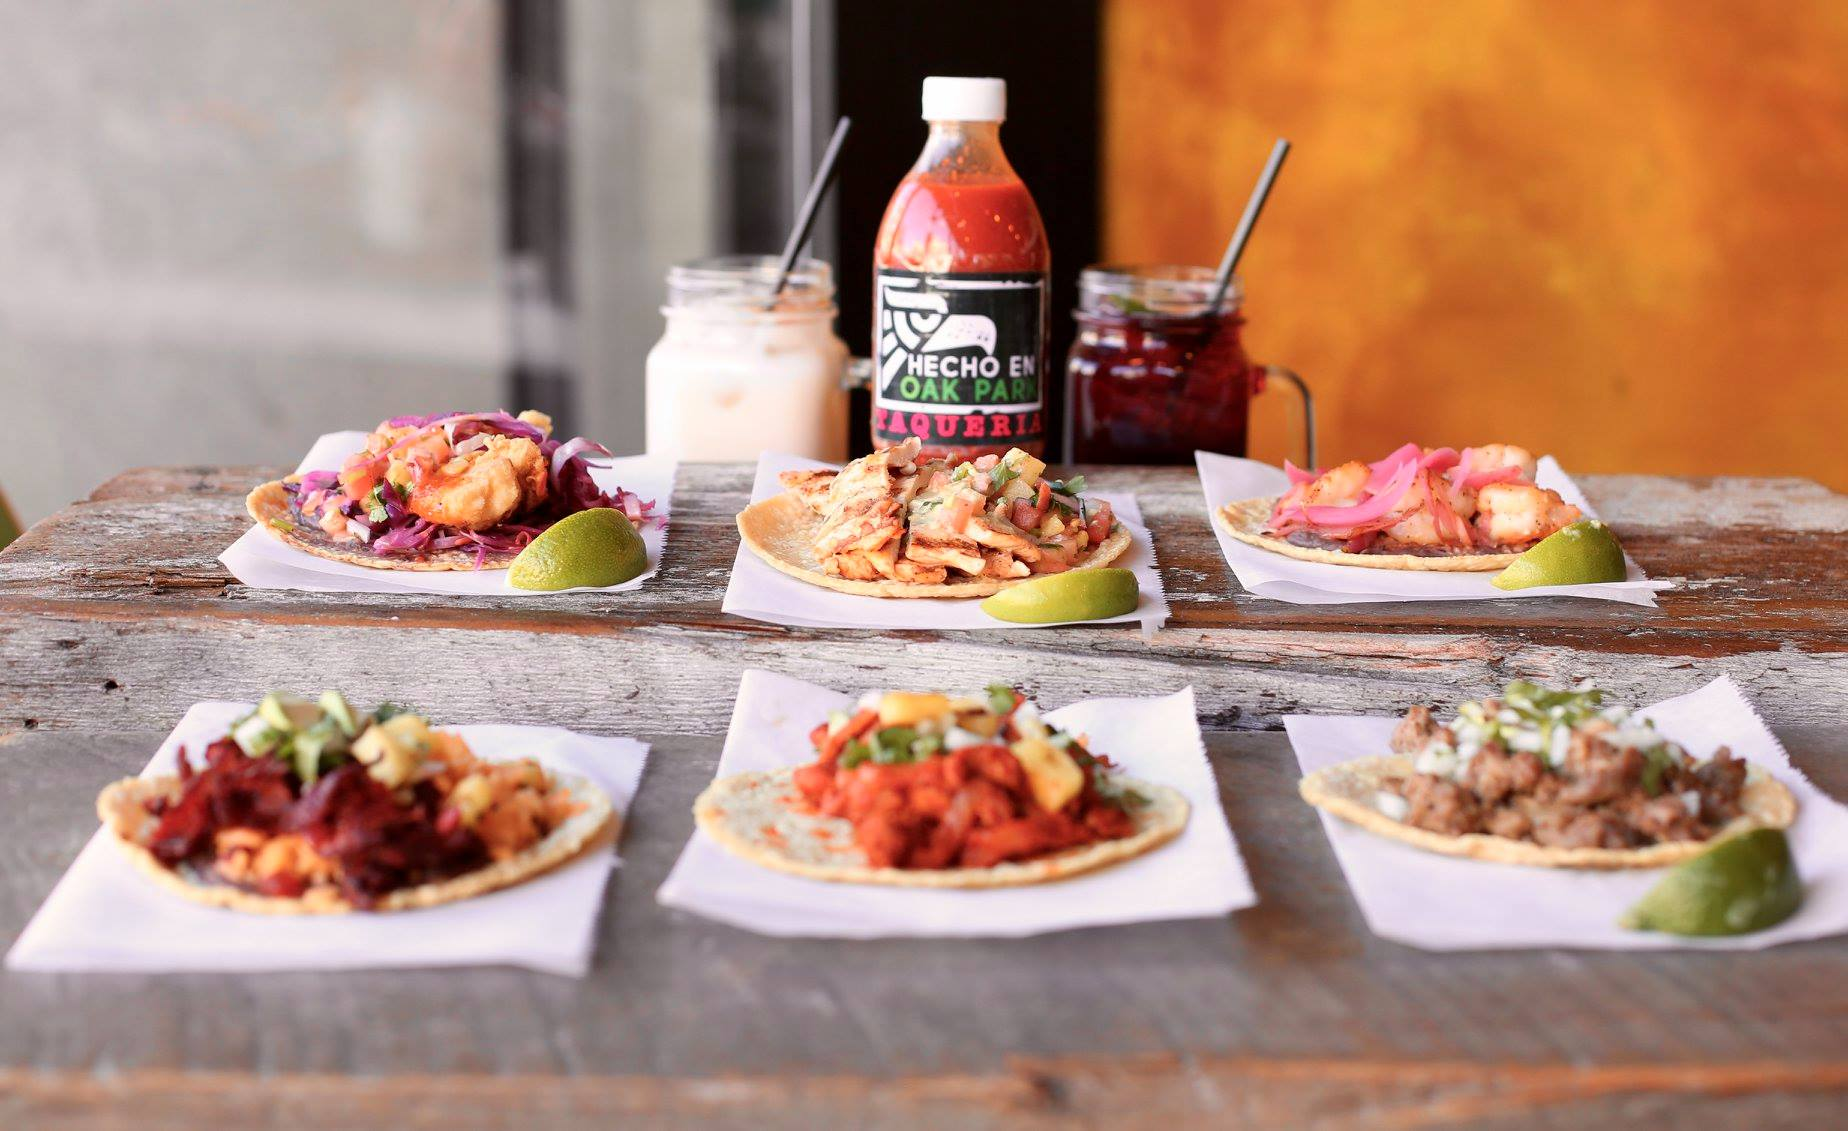 assortment of Tacos on a table with a side of sauce and margaritas